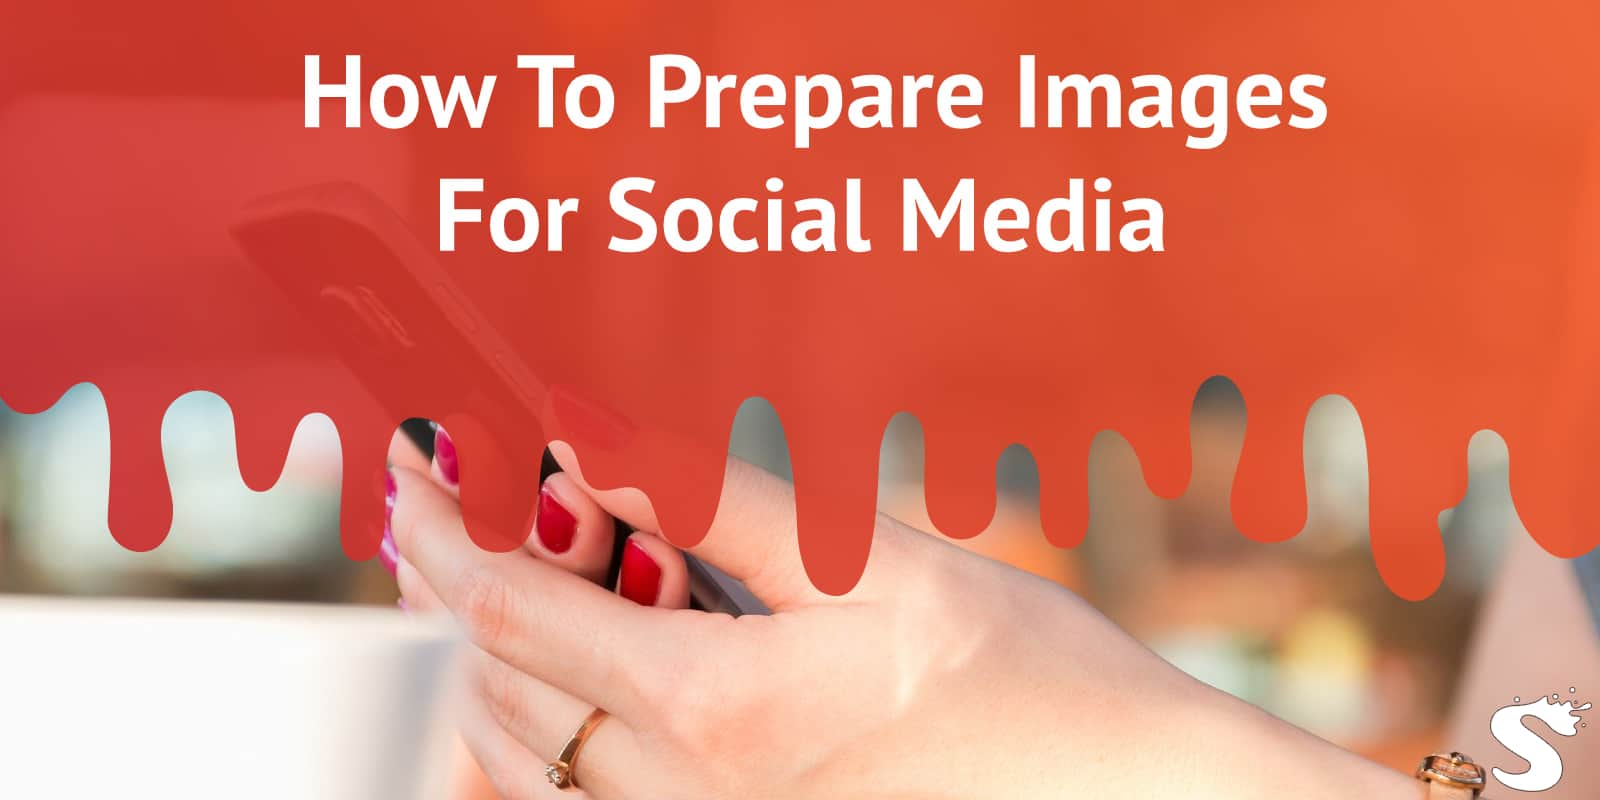 How to Prepare Images for Social Media